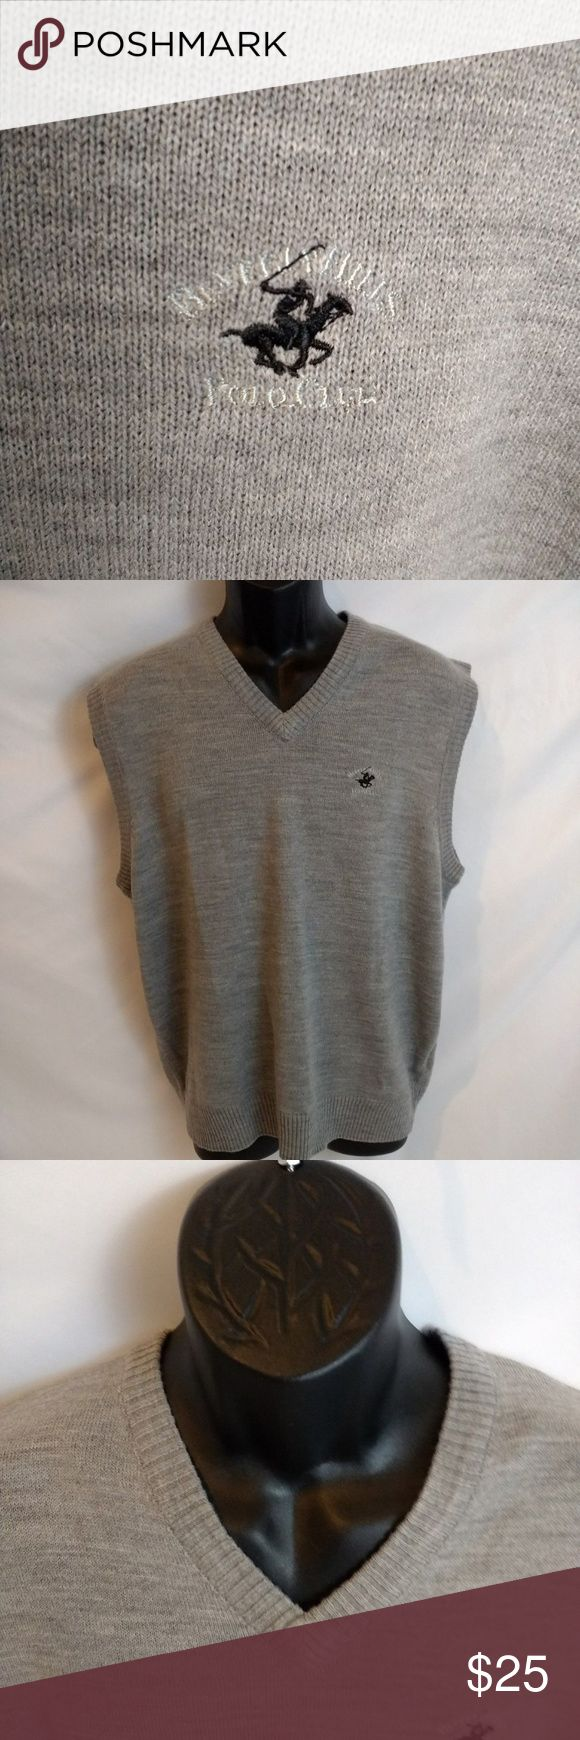 Beverly Hills Polo Club Men's 100% Acrylic Grey L Brand- Beverly Hills Polo Club  Size- Large L  Color- Grey  Pet Free Home/Smoke Free home  Measurements:   Length- 26 inches  Pit to Pit- 19 inches  Shoulder To Sleeve- 5 inches  T1 Beverly Hills Polo Club Shirts Polos